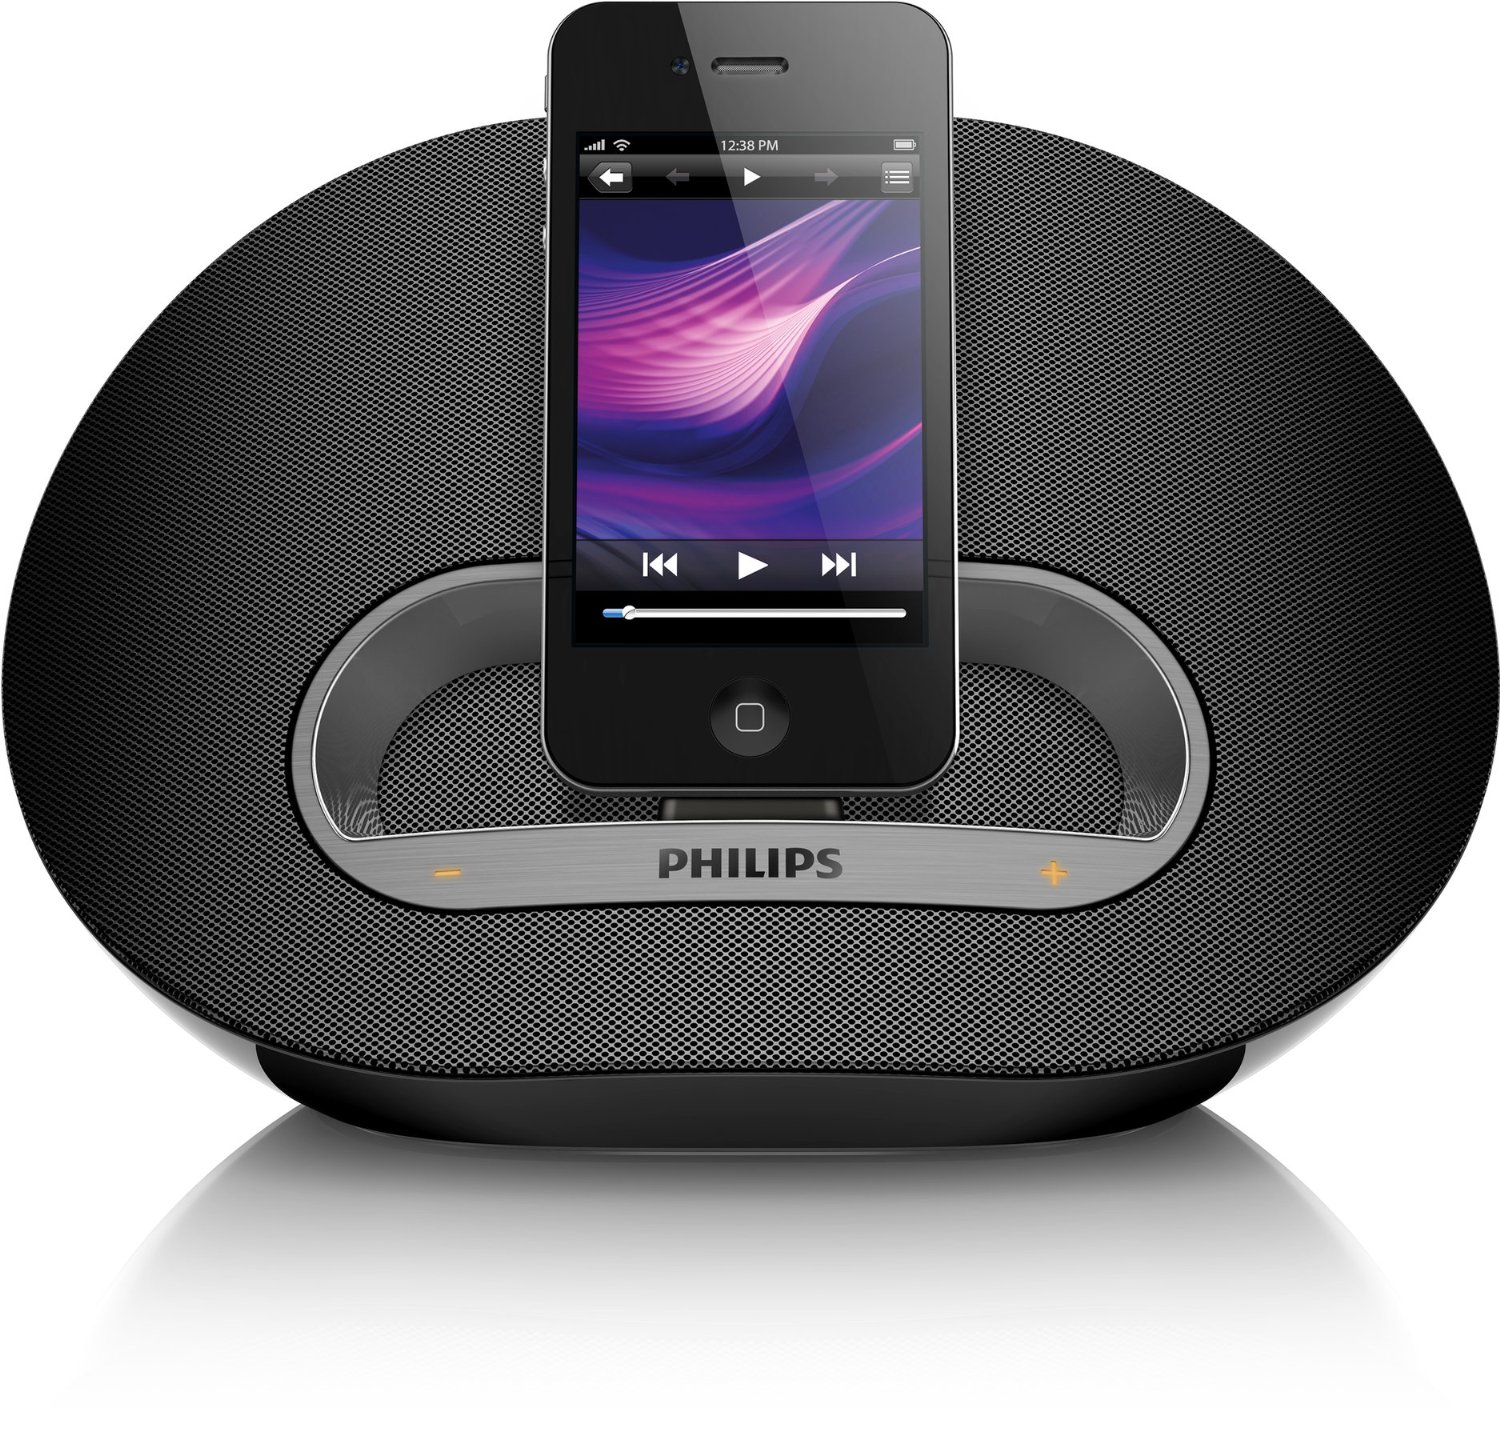 Philips Dock